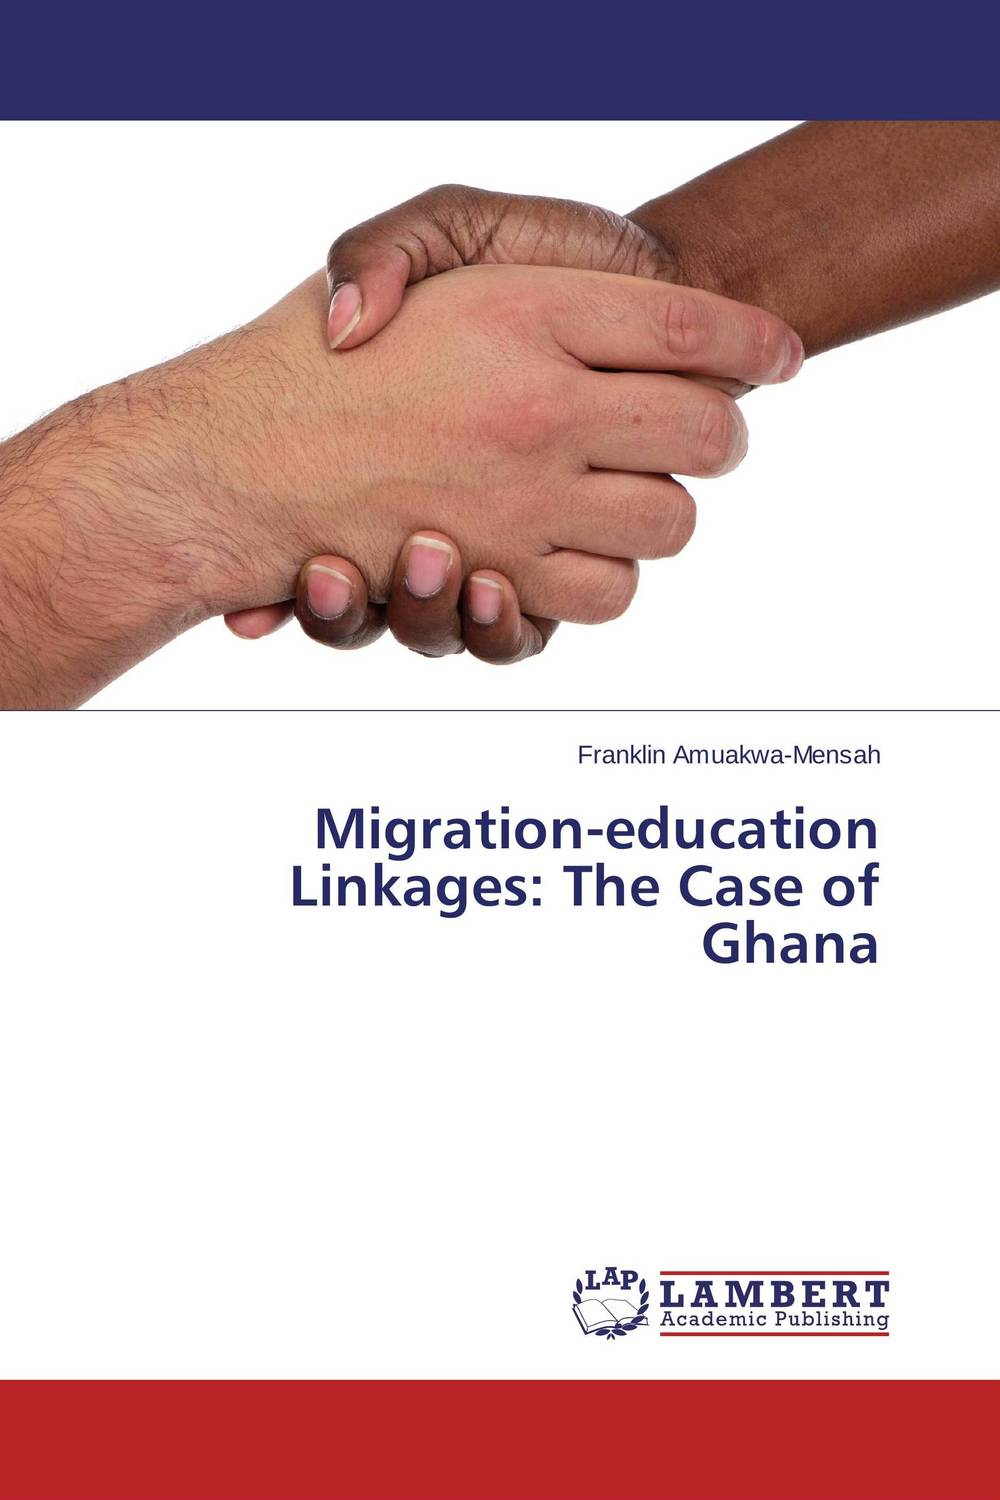 Migration-education Linkages: The Case of Ghana